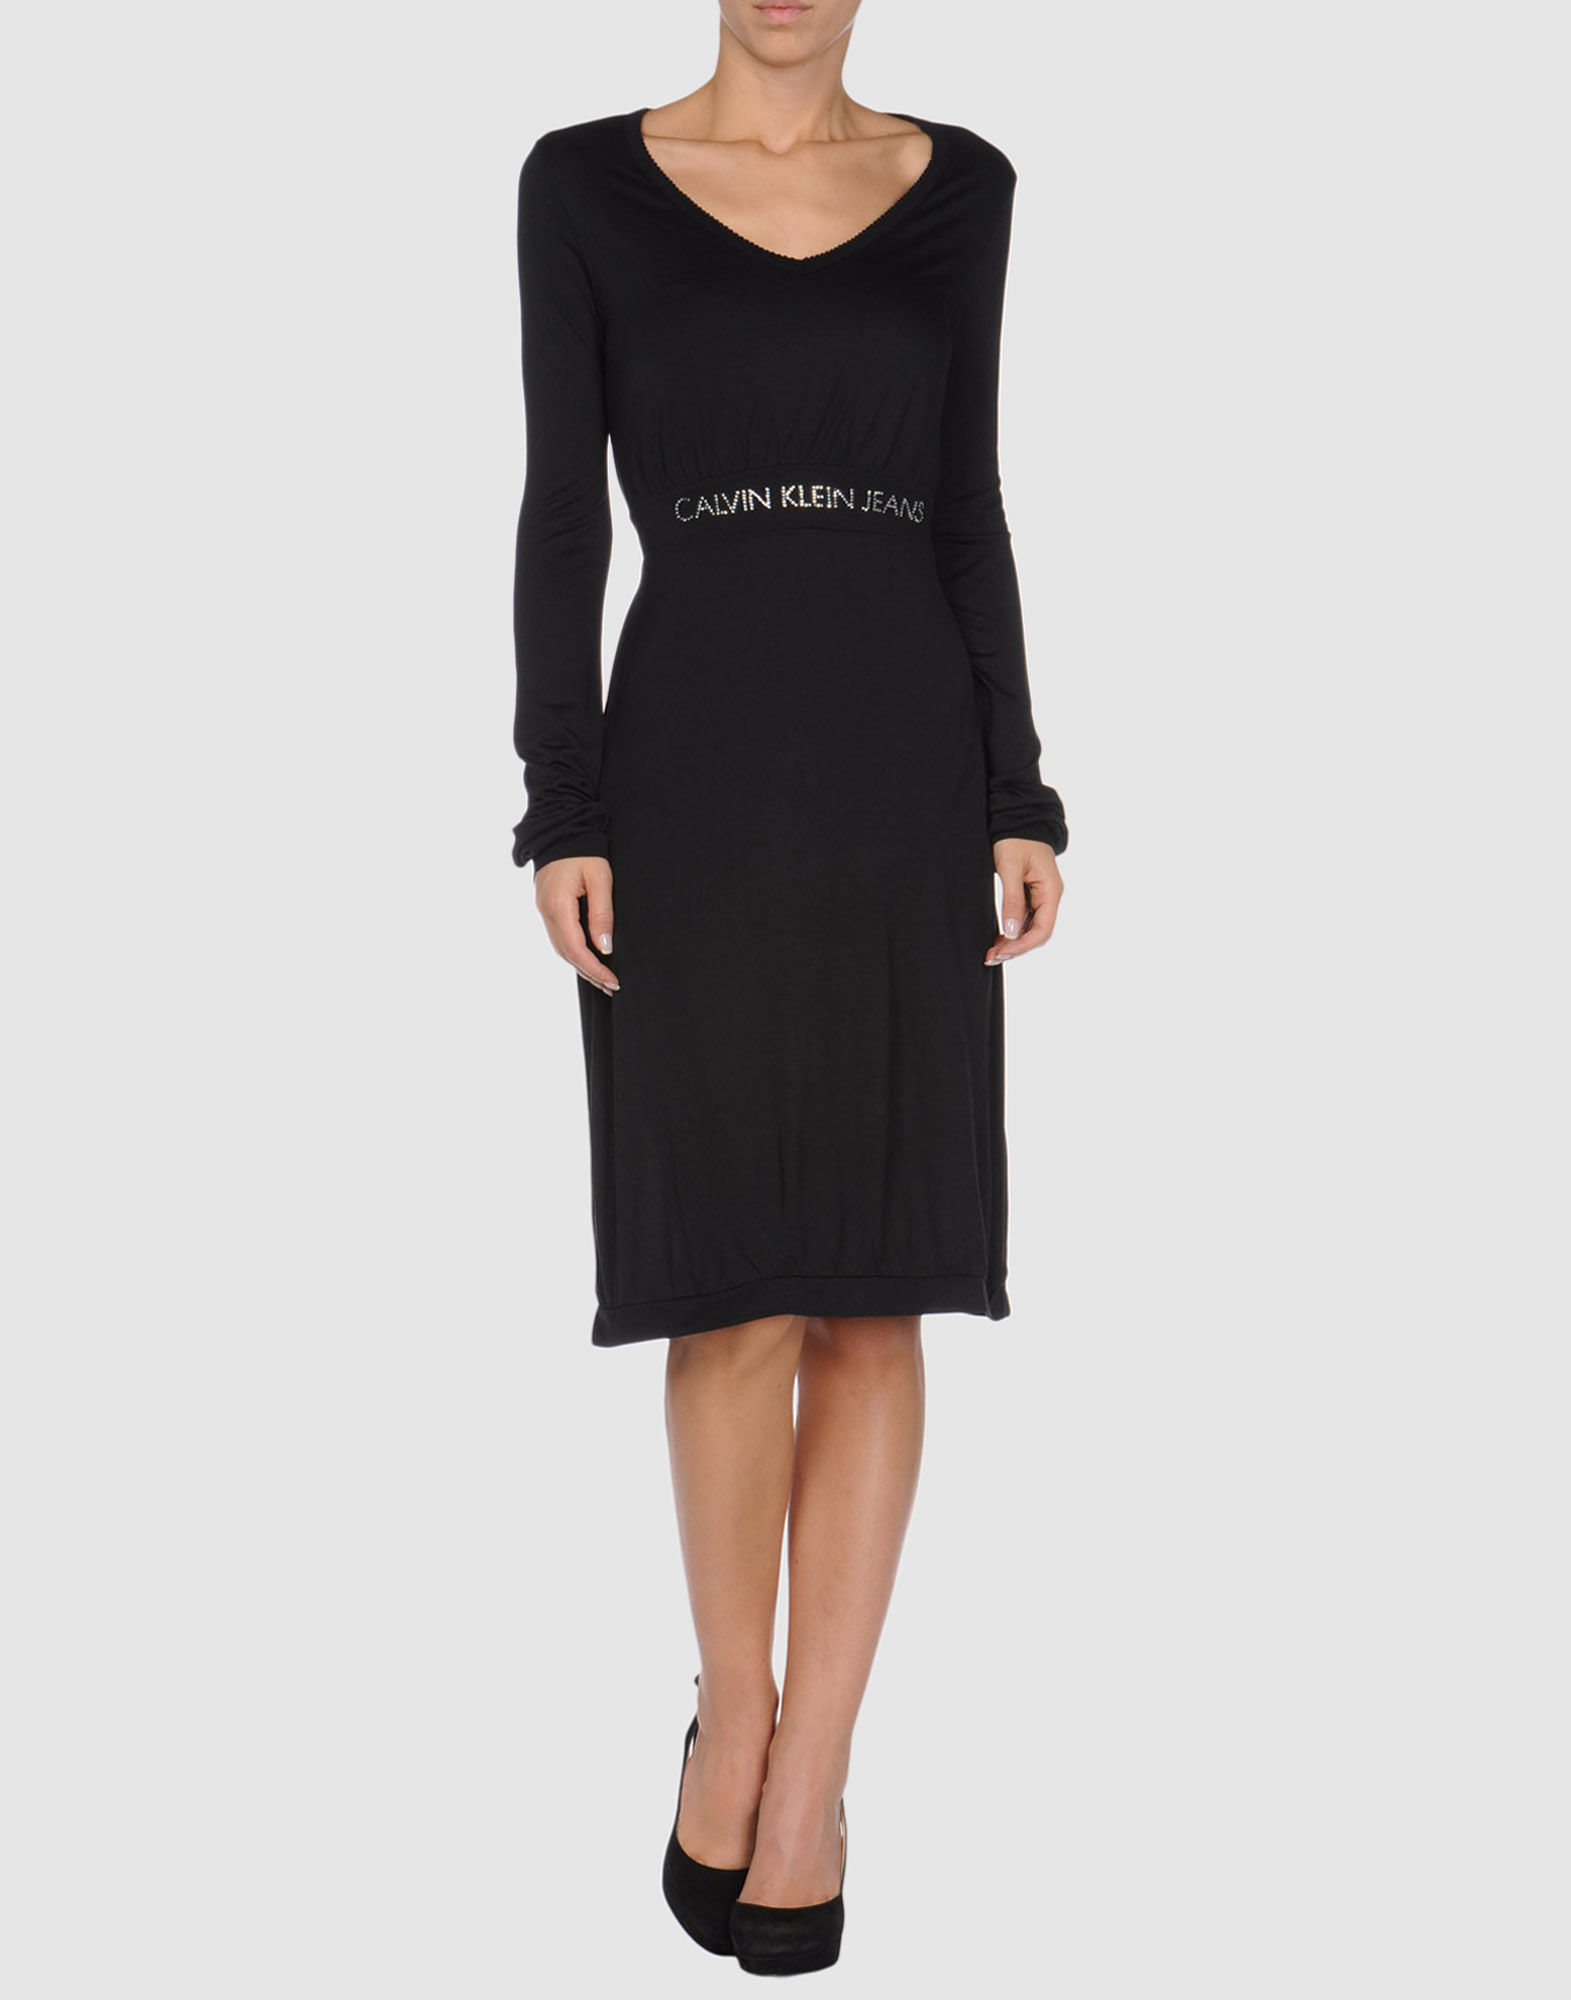 calvin klein dresses in black lyst